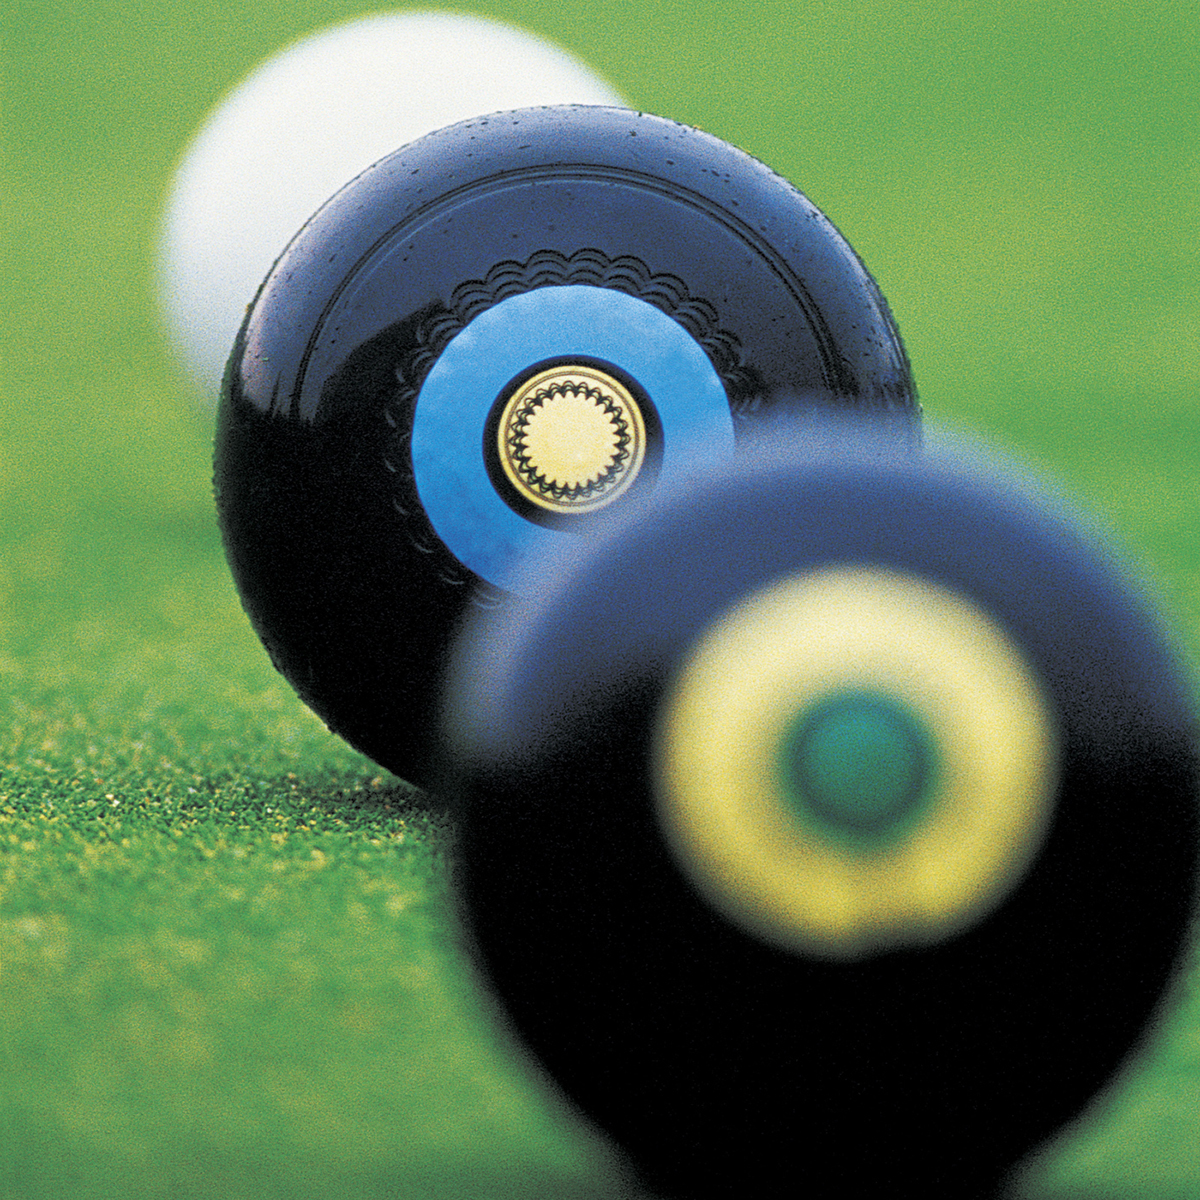 Lower Darwen Memorial Bowling Club bowled over by club grant